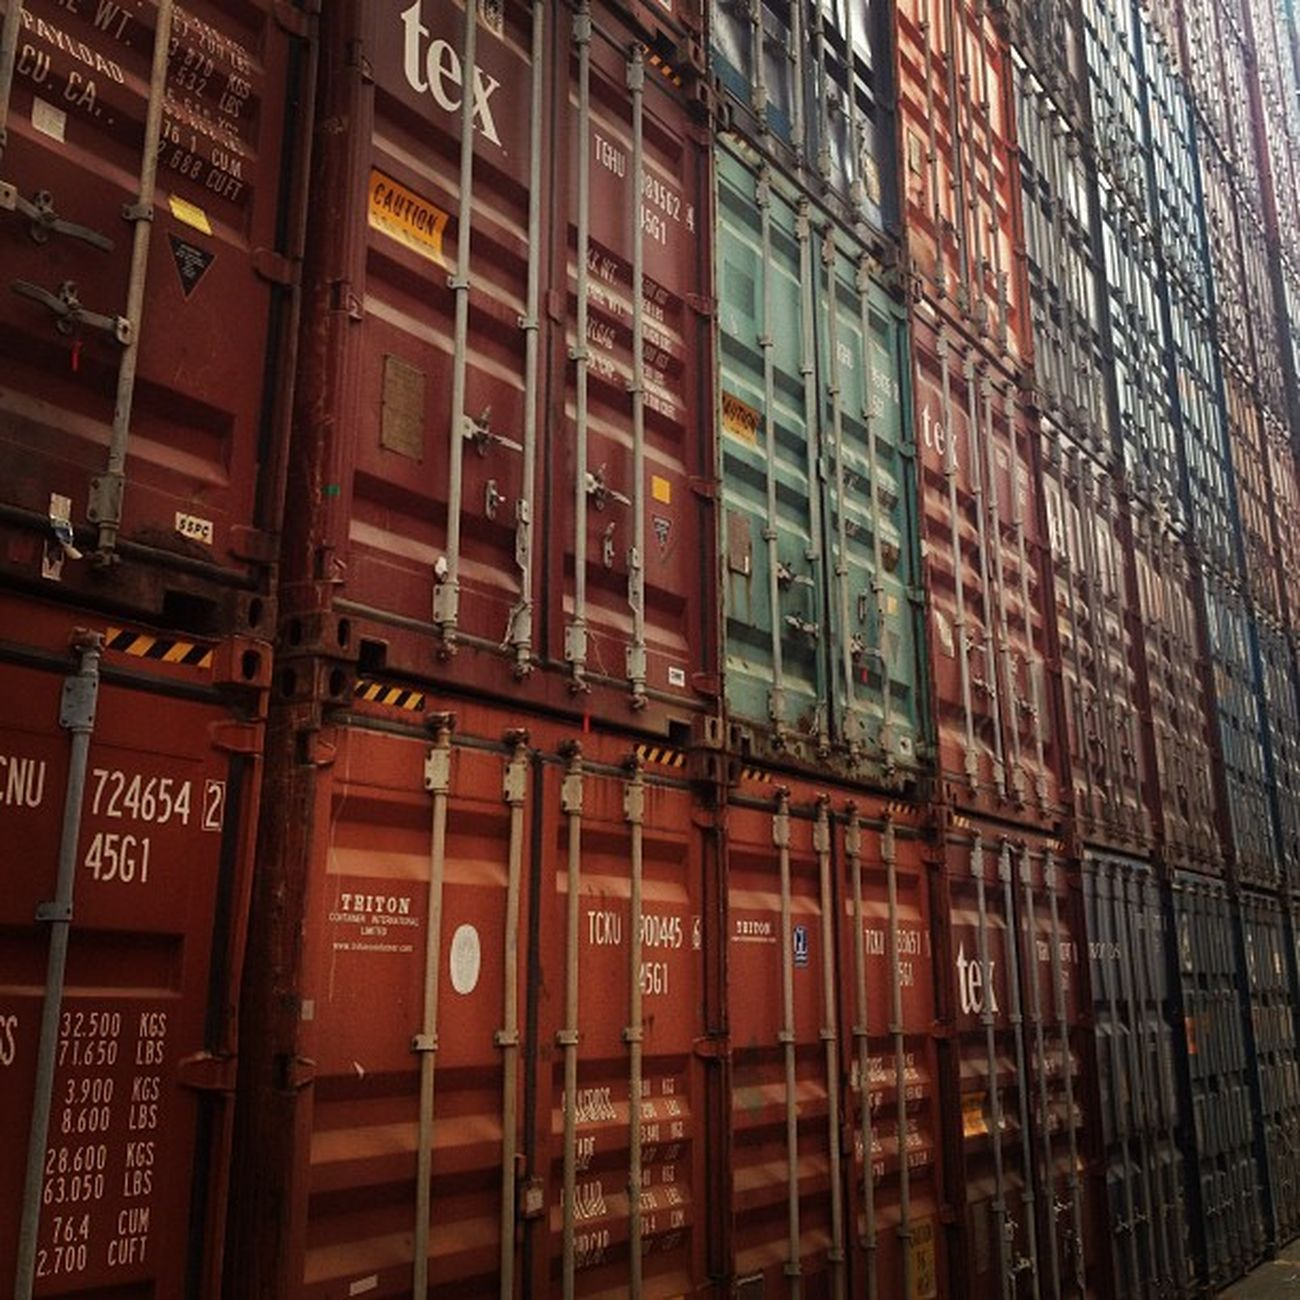 A world of adventures, where might all these containers go next? Sequbu Valparaíso Port